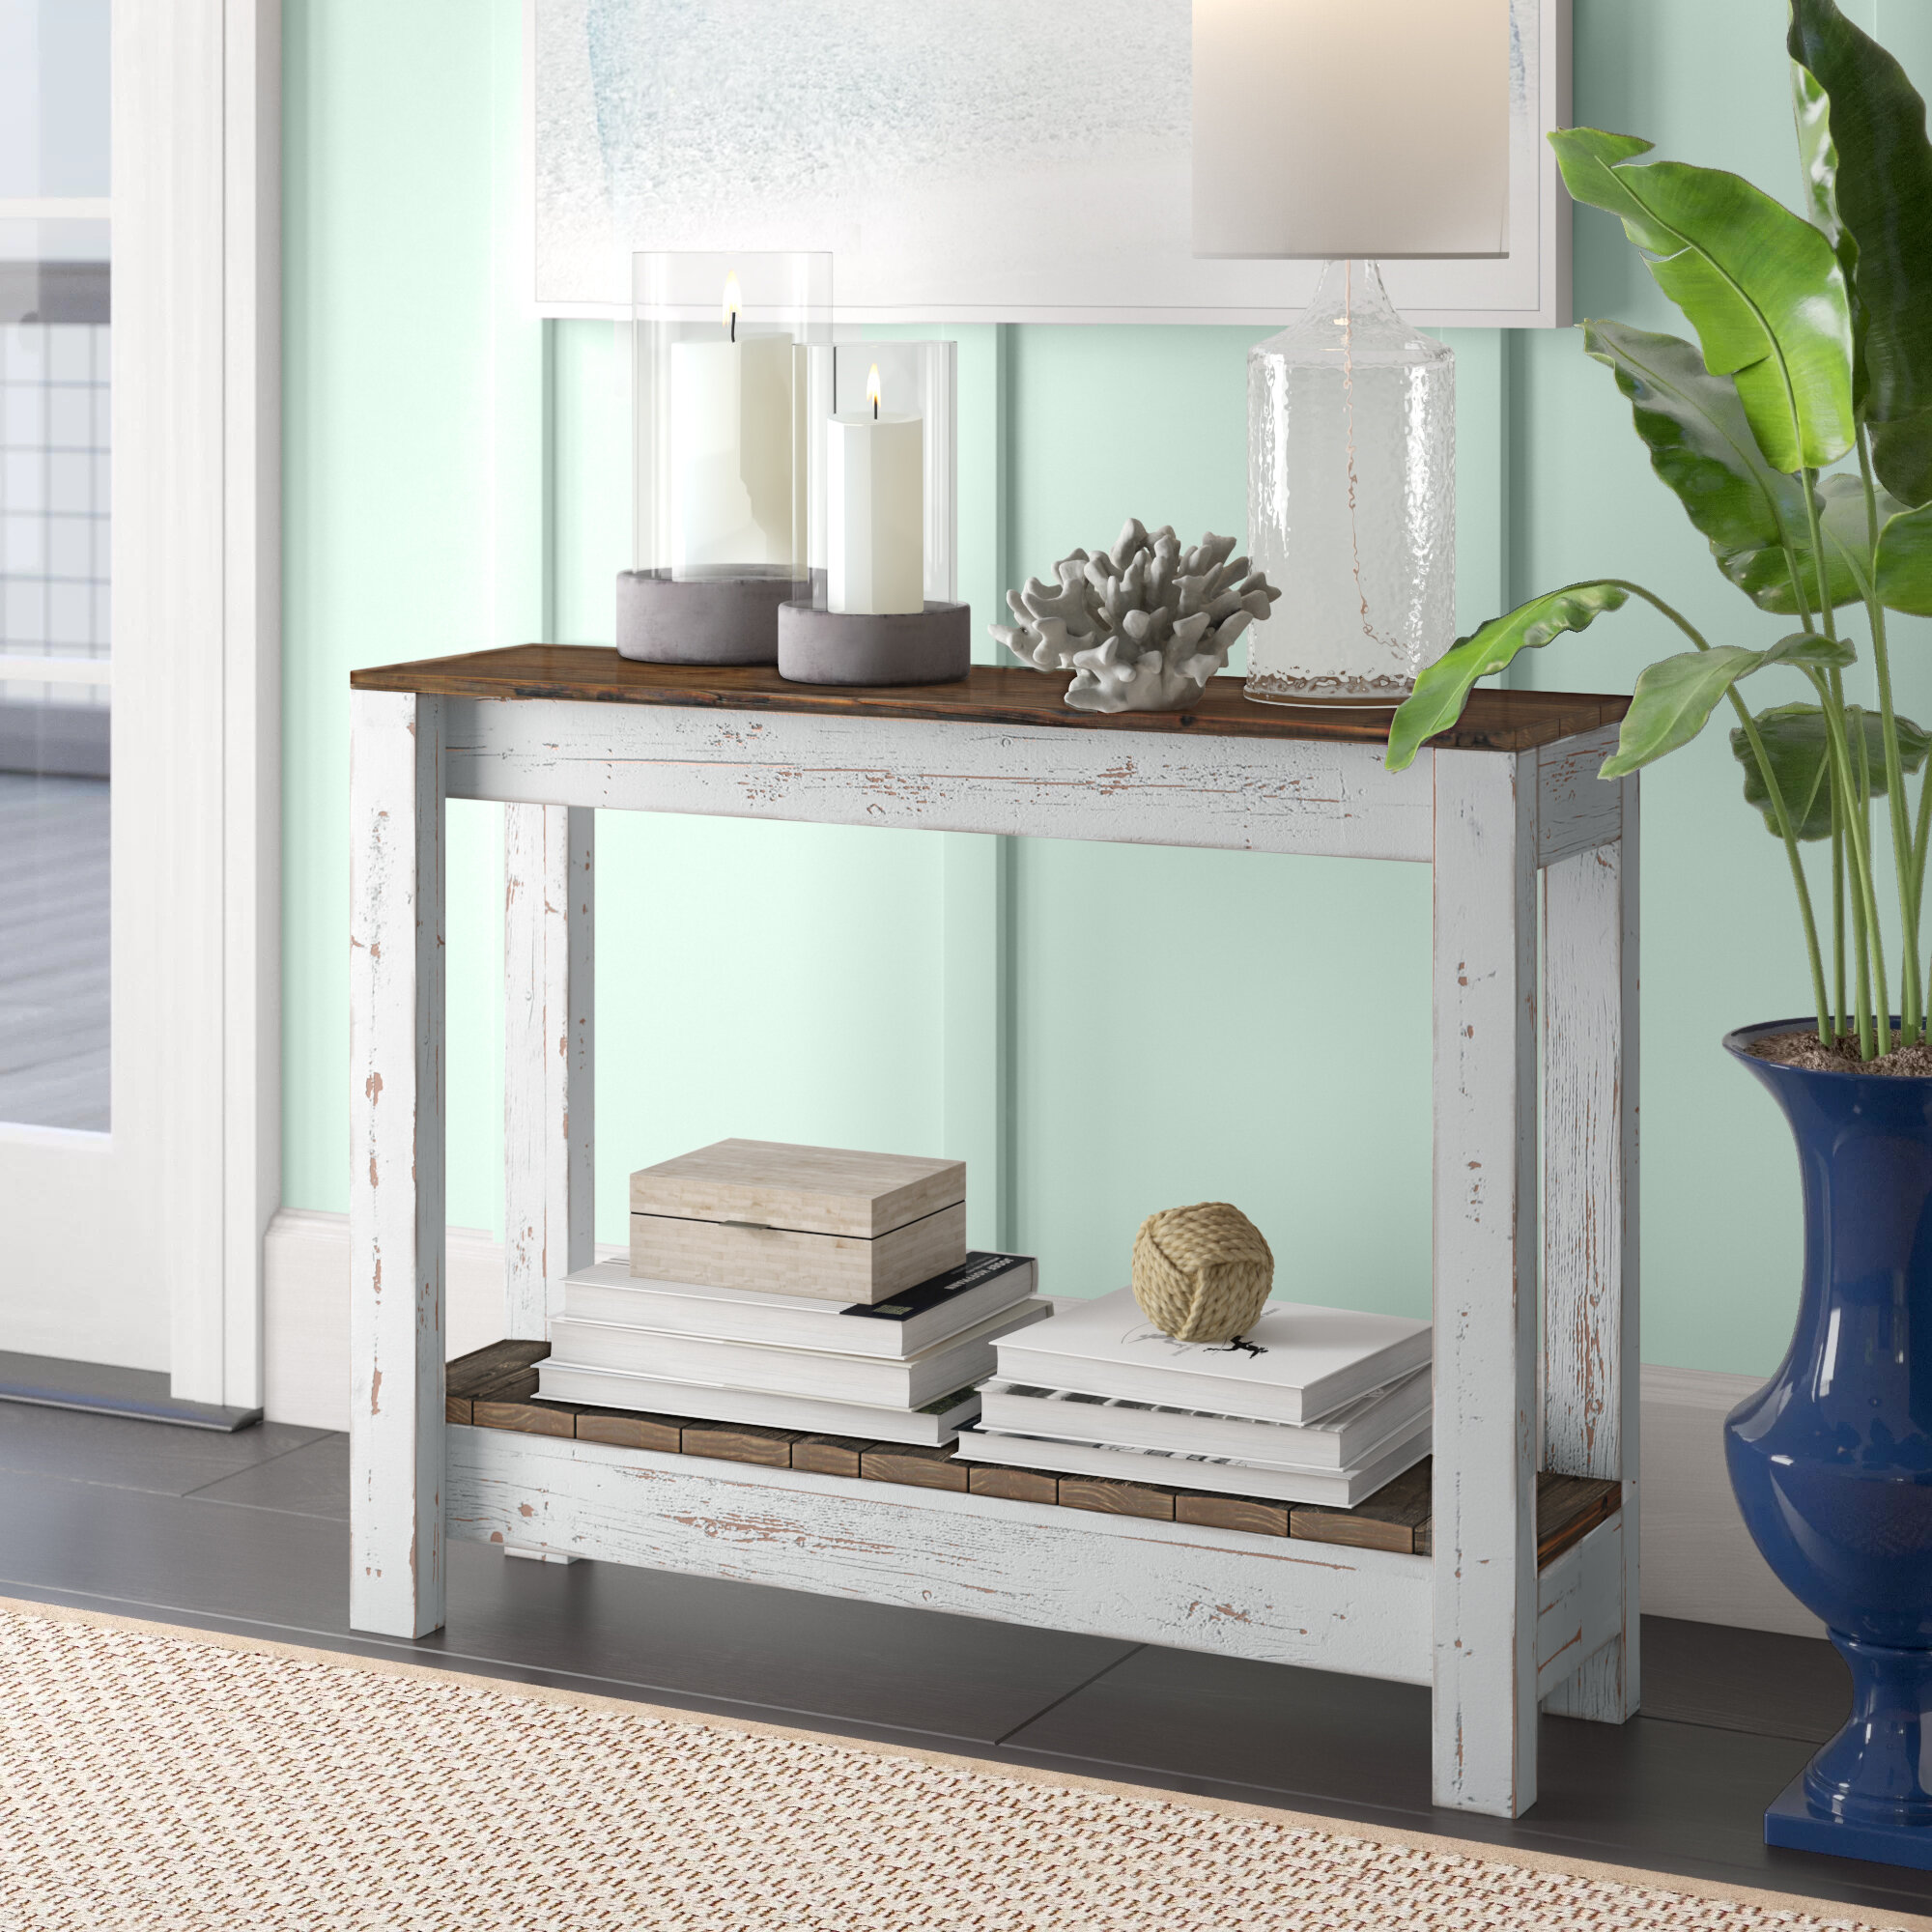 Highland Dunes Itzayana 36'' Solid Wood Console Table & Reviews